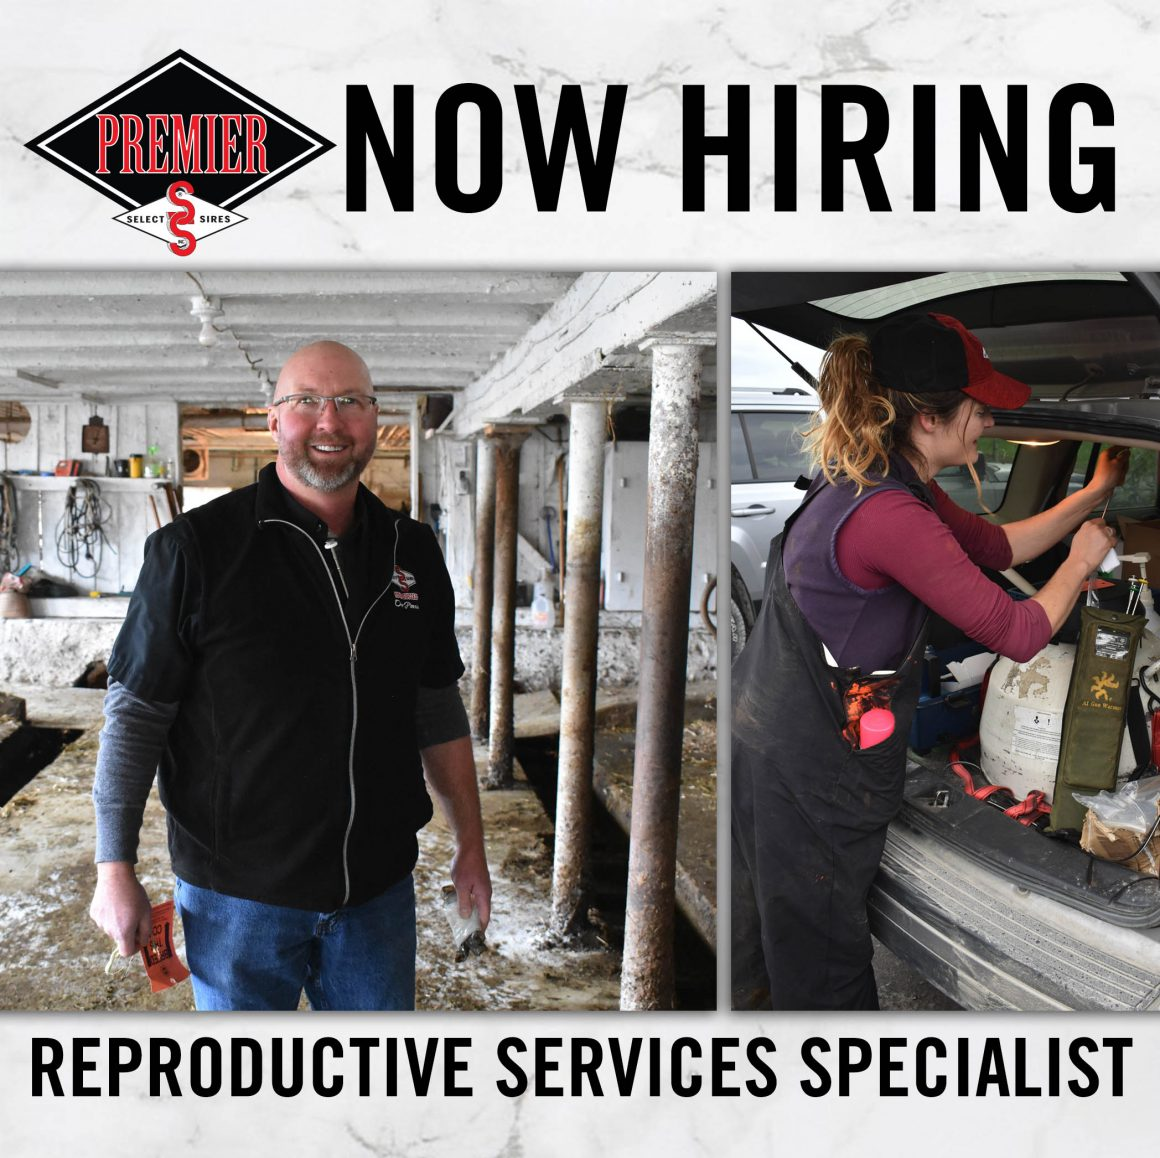 Part Time Reproductive Services Specialist in New York (seeking two individuals)